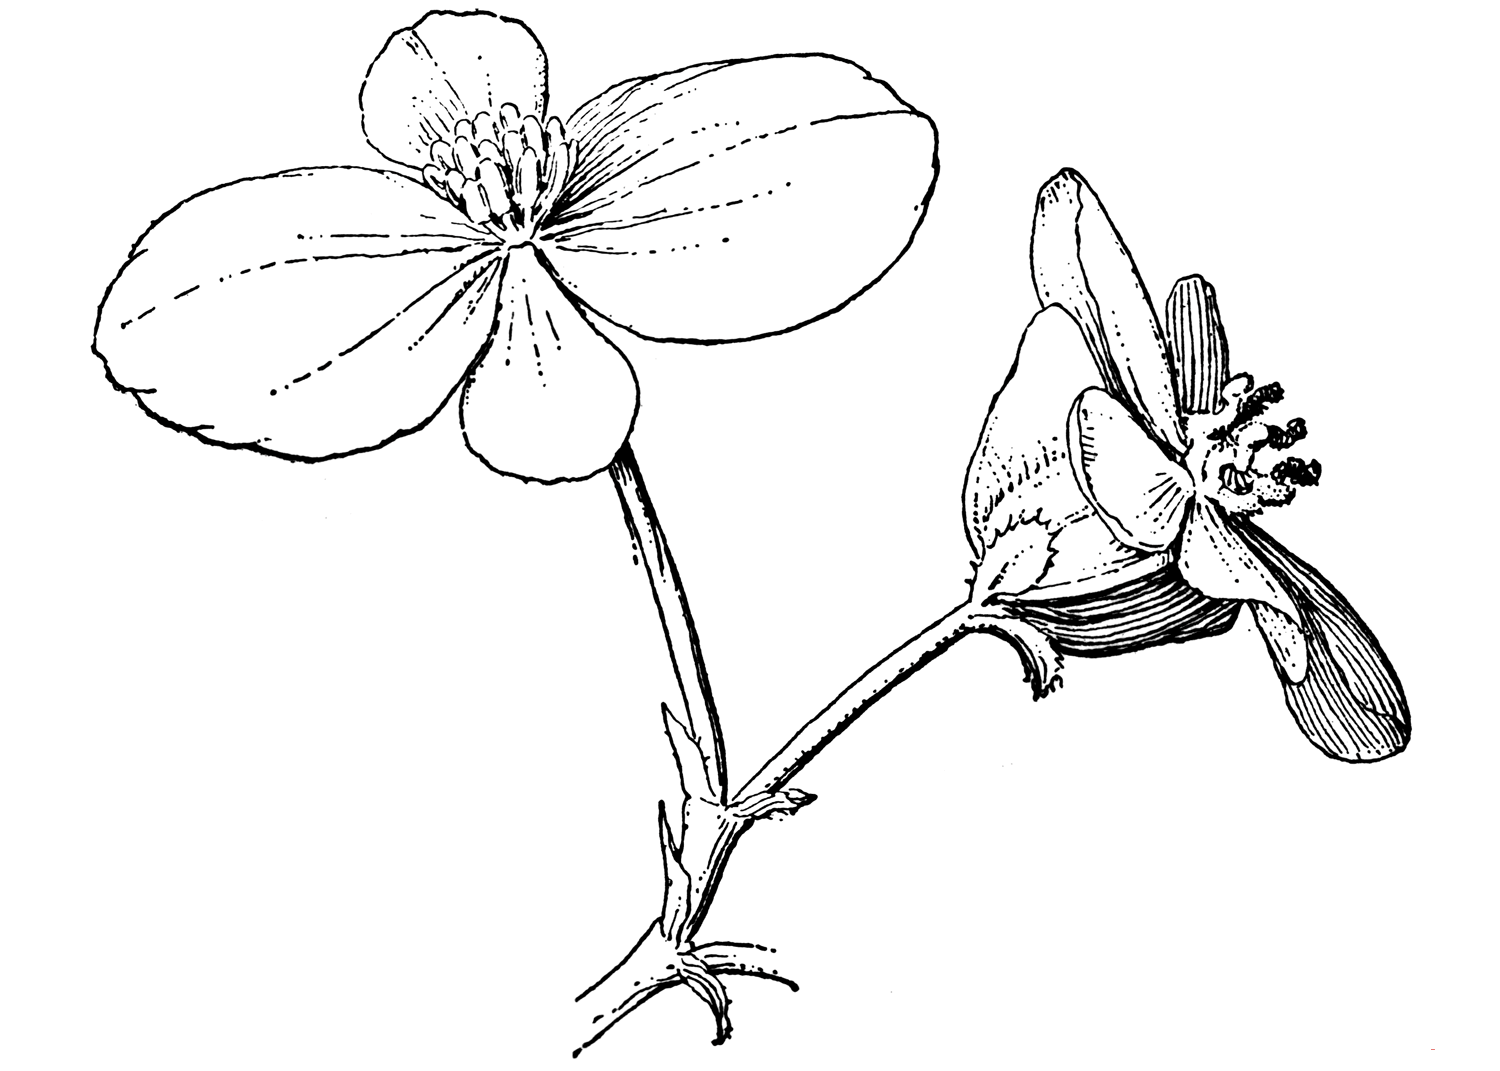 Begonia coloring pages to download and print for free